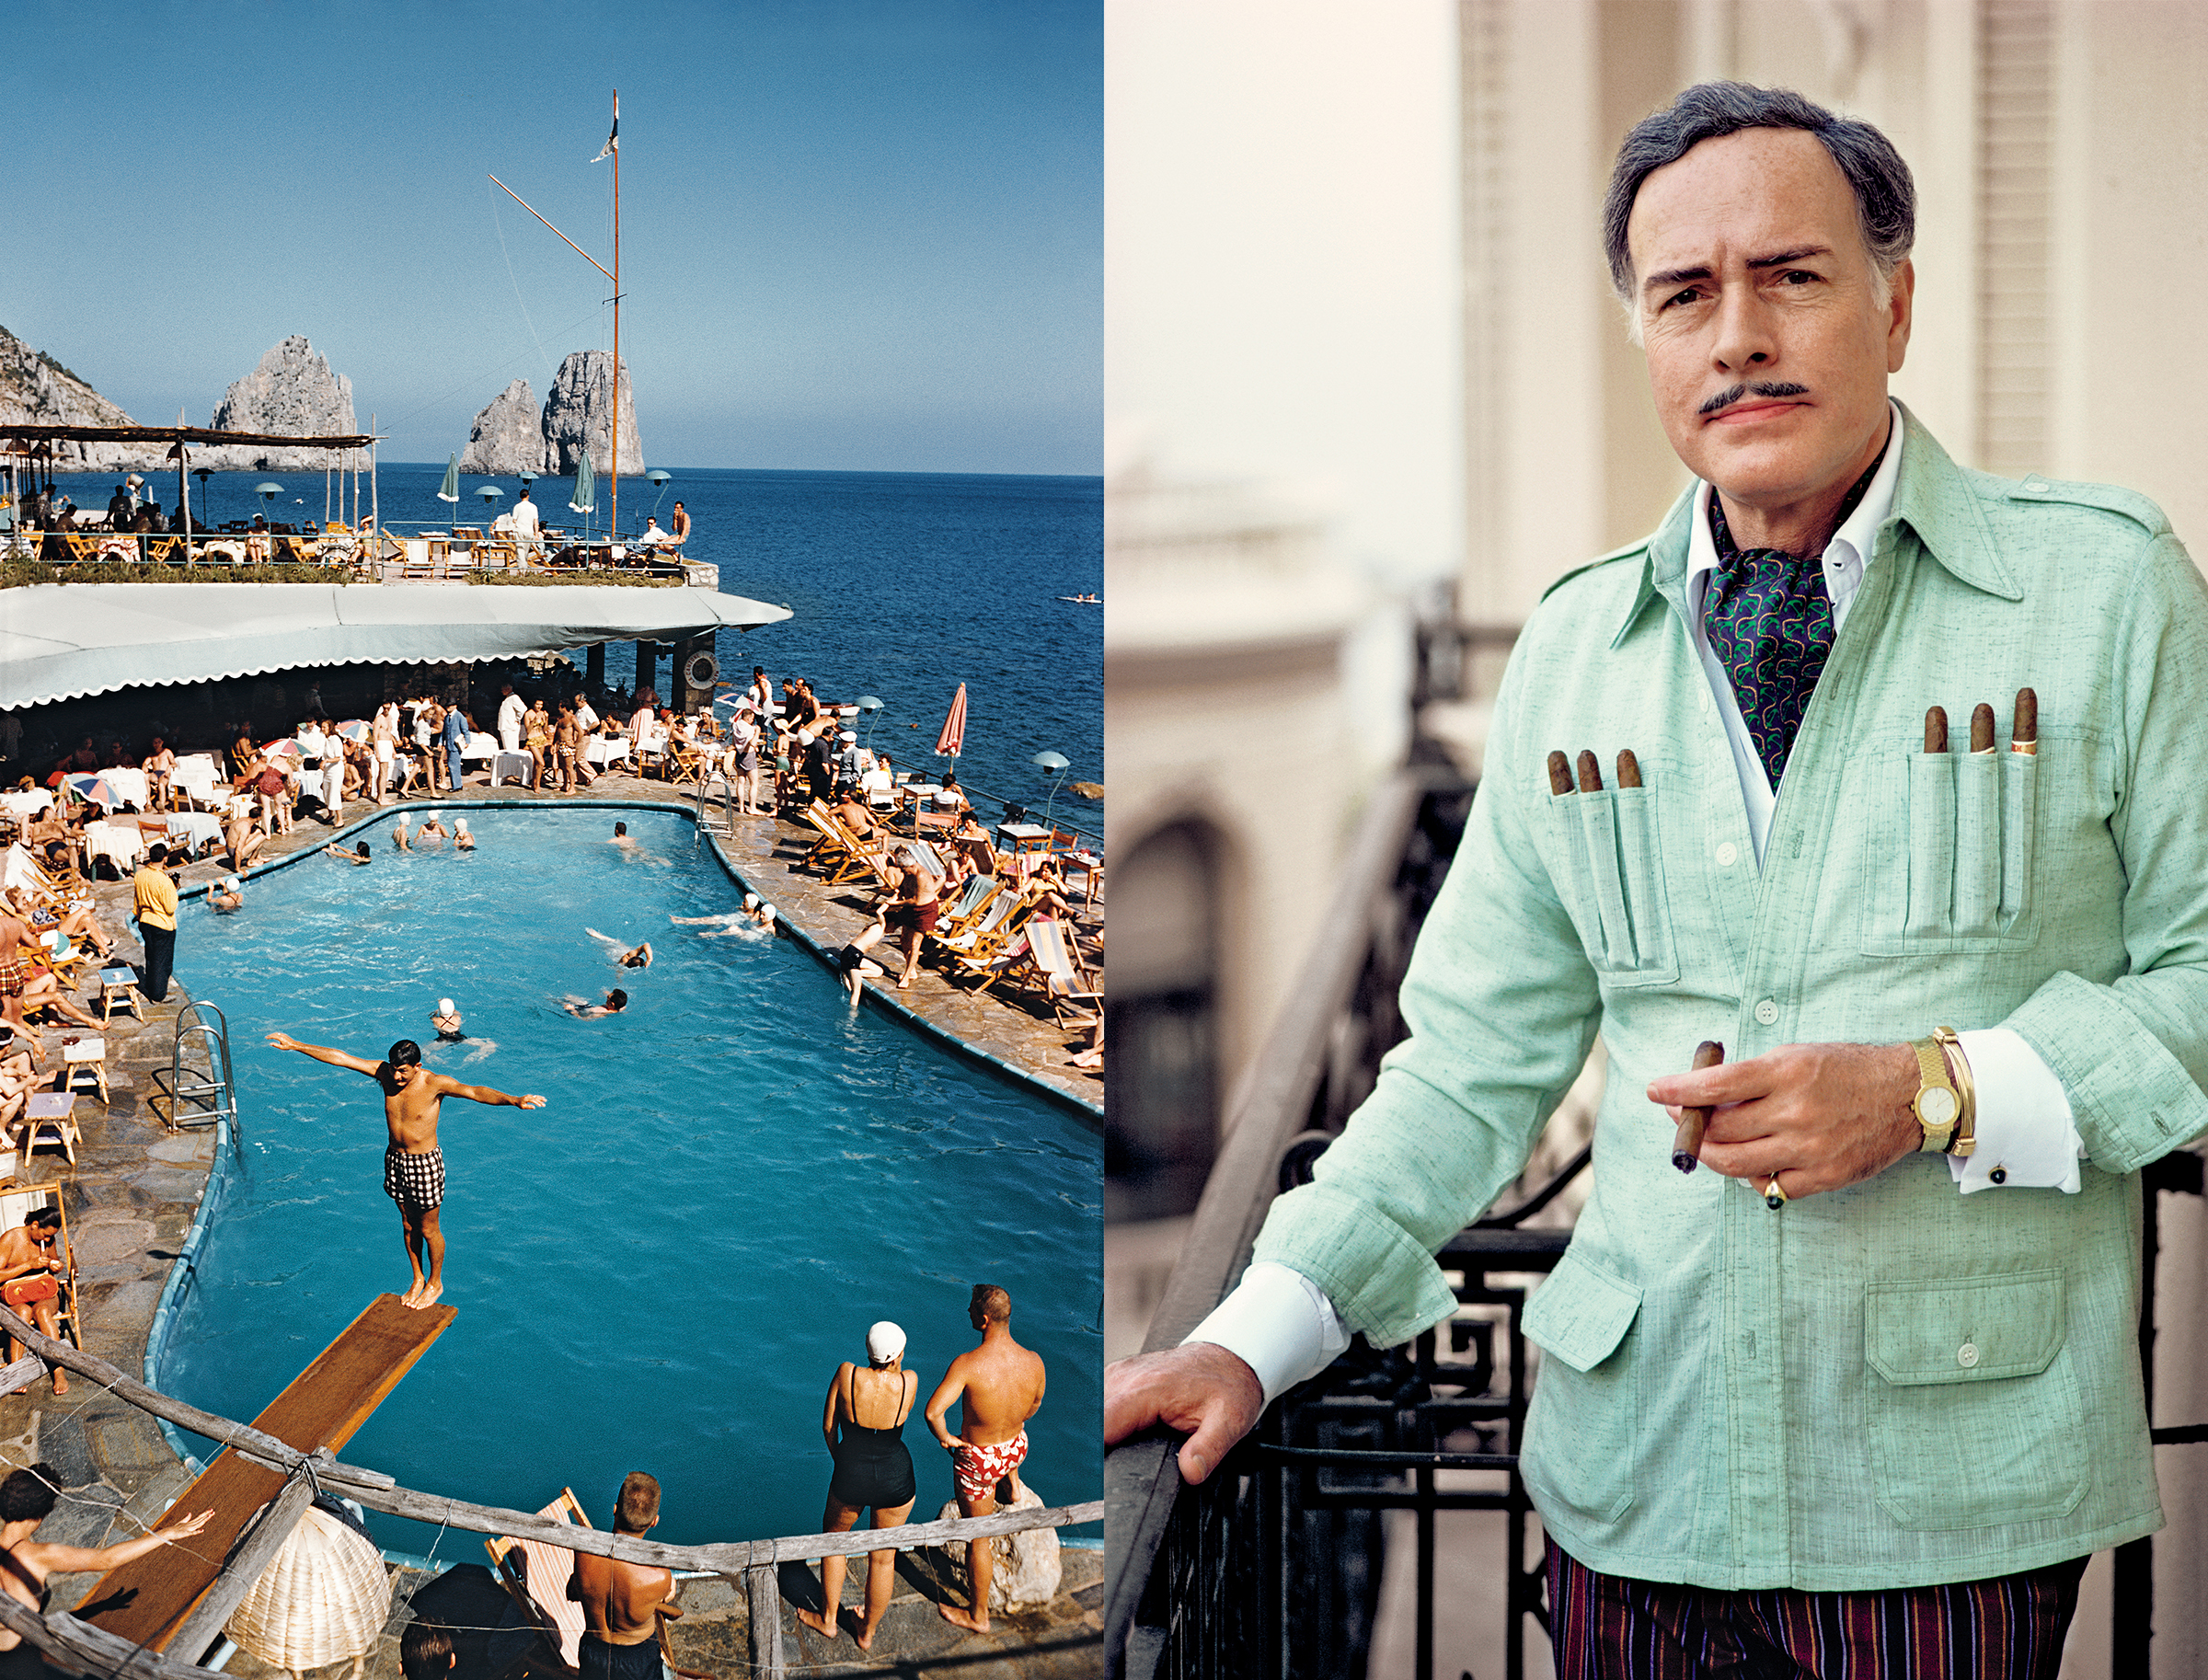 Two photos by Slim Aarons: one of a man jumping off a diving board at a party, and one of a wealthy man in a guayabera shirt smoking a cigar